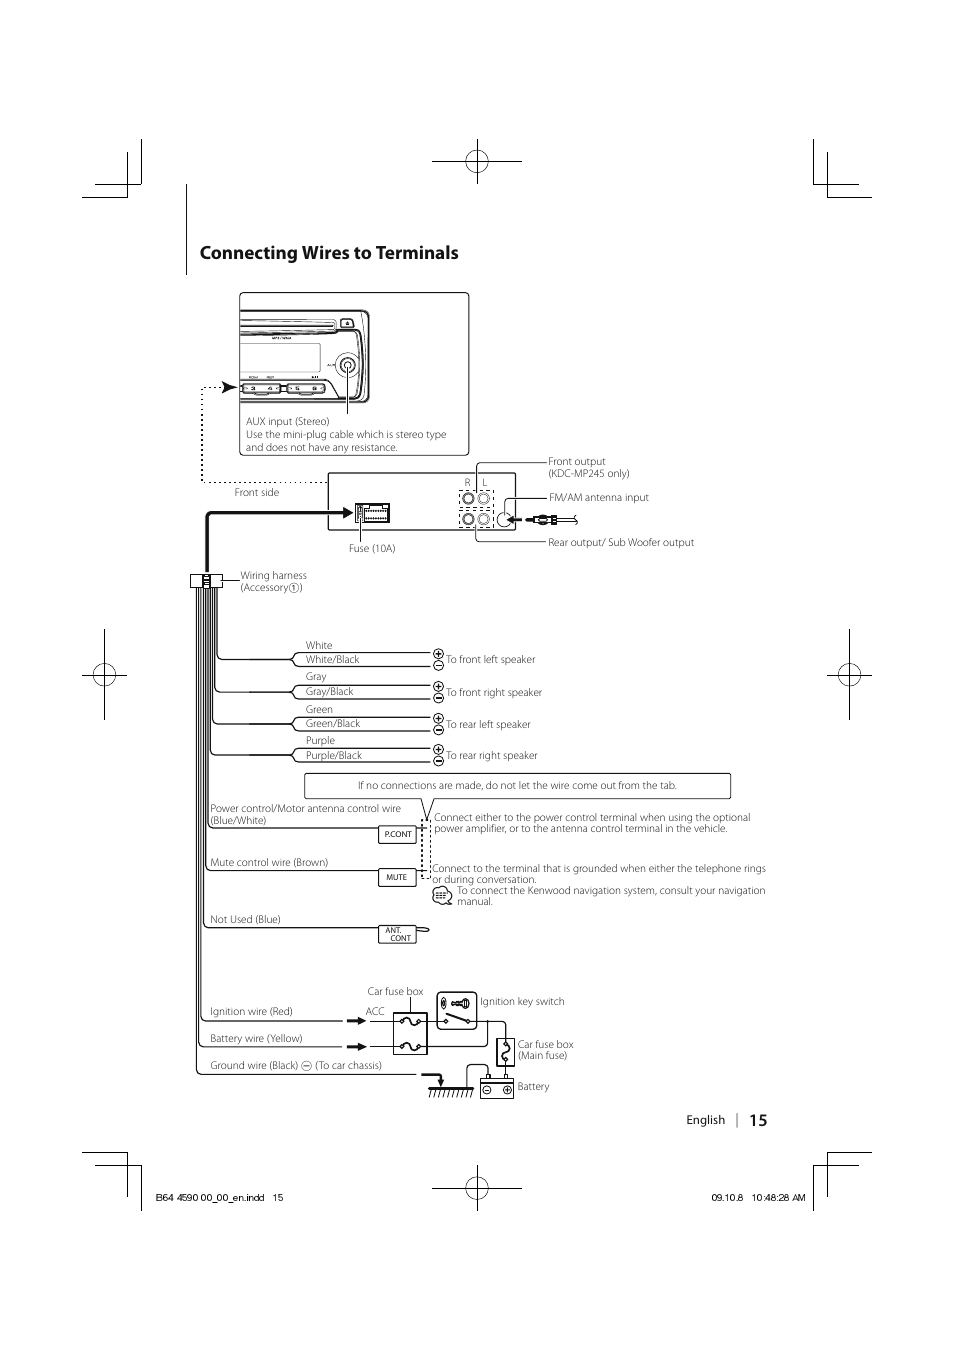 medium resolution of connecting wires to terminals kenwood kdc mp245 user manual page schematic diagram connecting wires to terminals